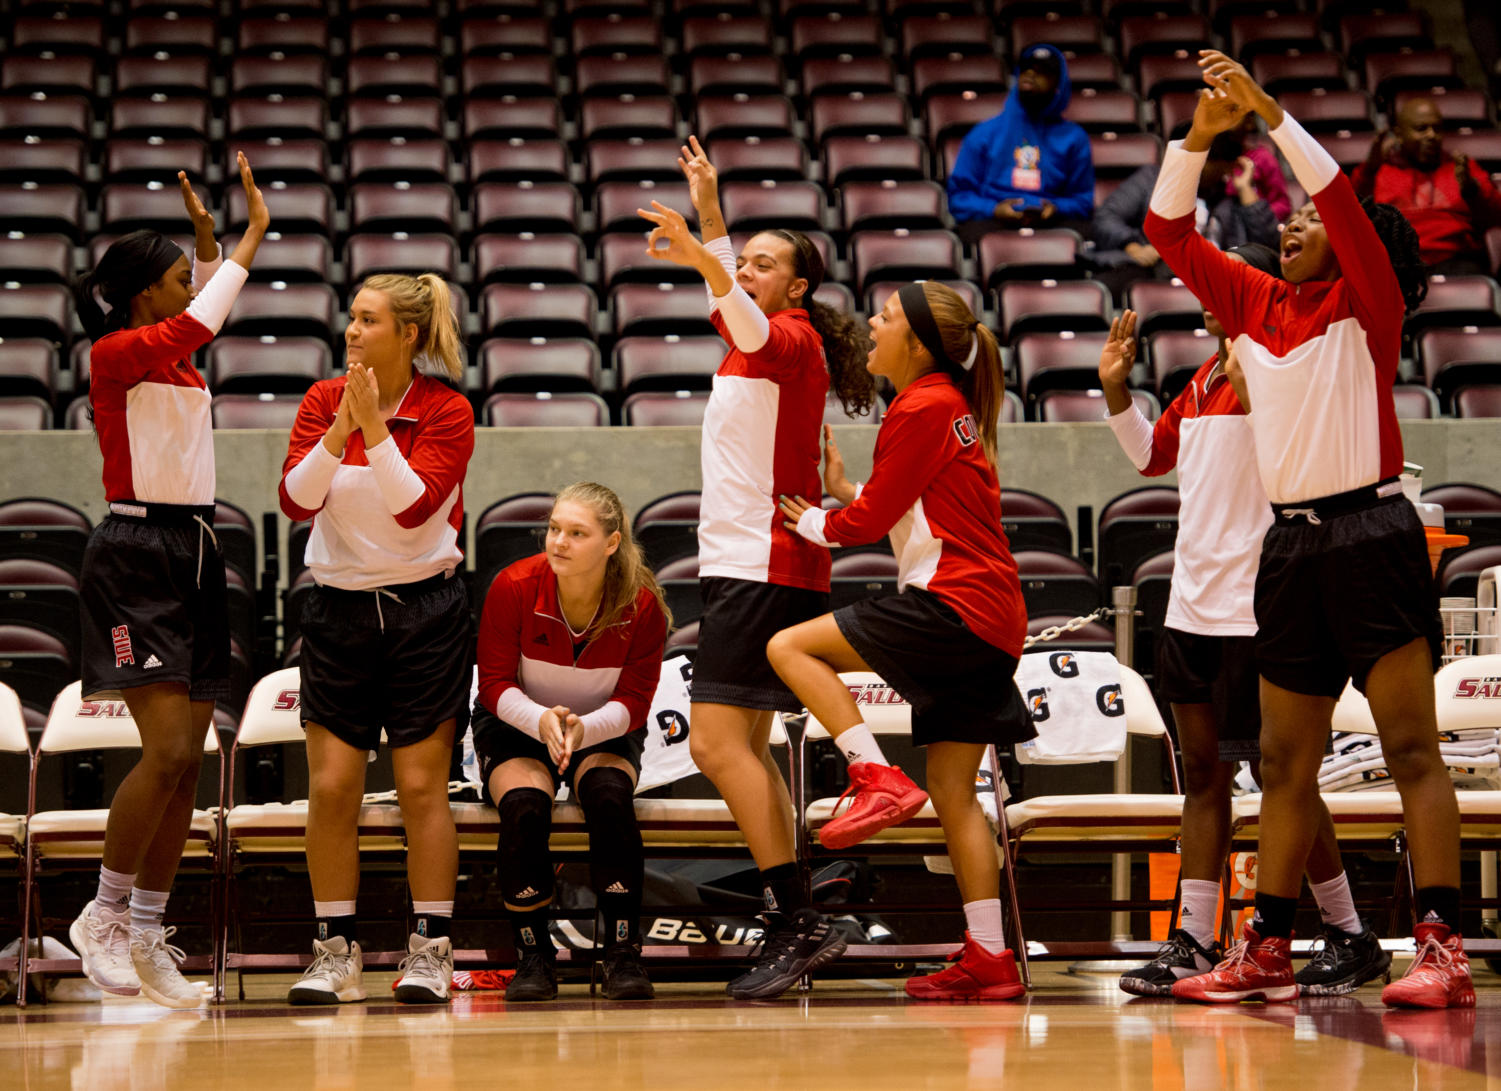 Members+of+the+SIUE+basketball+team+celebrate+after+scoring+a+basket+Monday%2C+Nov.+27%2C+2017%2C+during+the+Salukis%27+57-53+loss+to+the+SIU+Edwardsville+Cougars+at+SIU+Arena.+%28Brian+Mu%C3%B1oz+%7C+%40BrianMMunoz%29